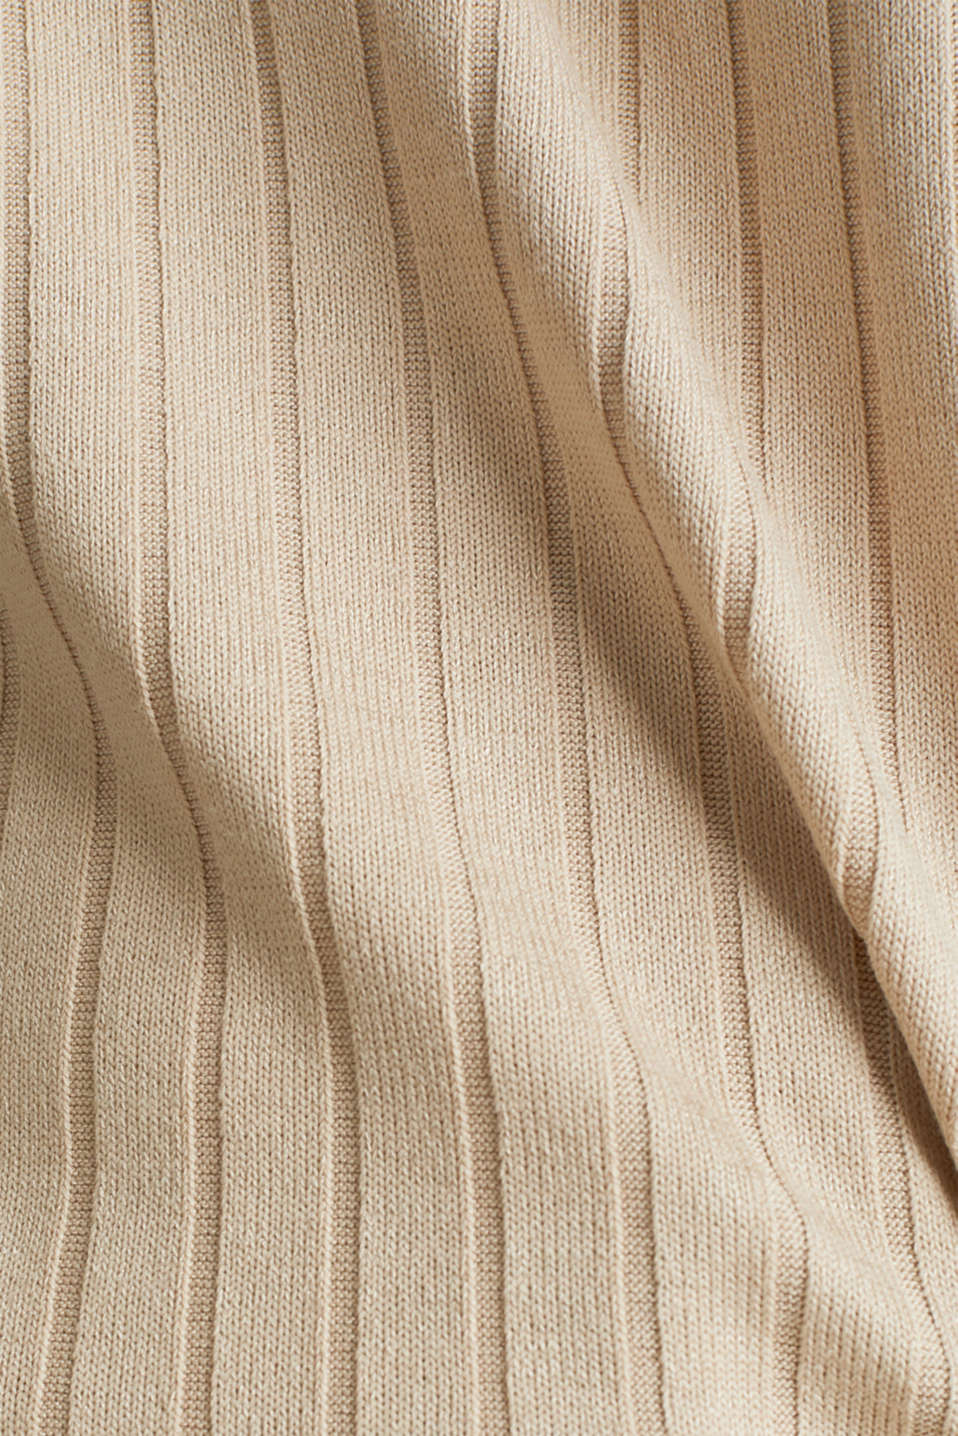 V-neck T-shirt with a ribbed texture and stretch, LIGHT BEIGE, detail image number 3